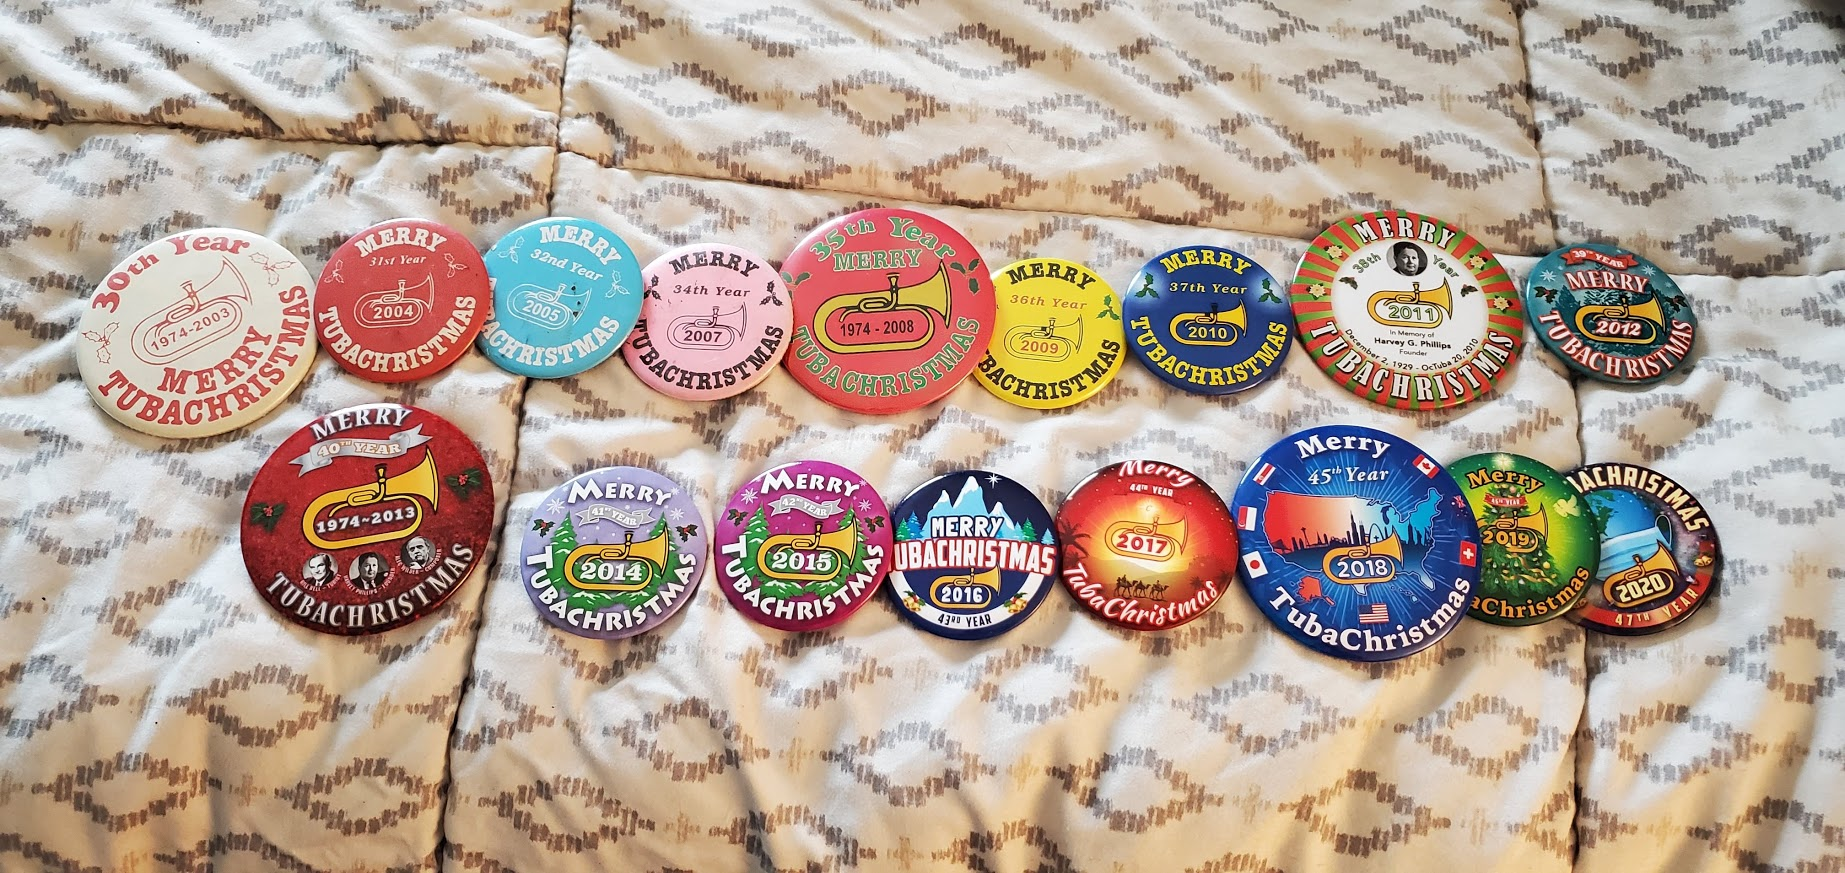 2003 - 2020 Buttons! Missing a few.